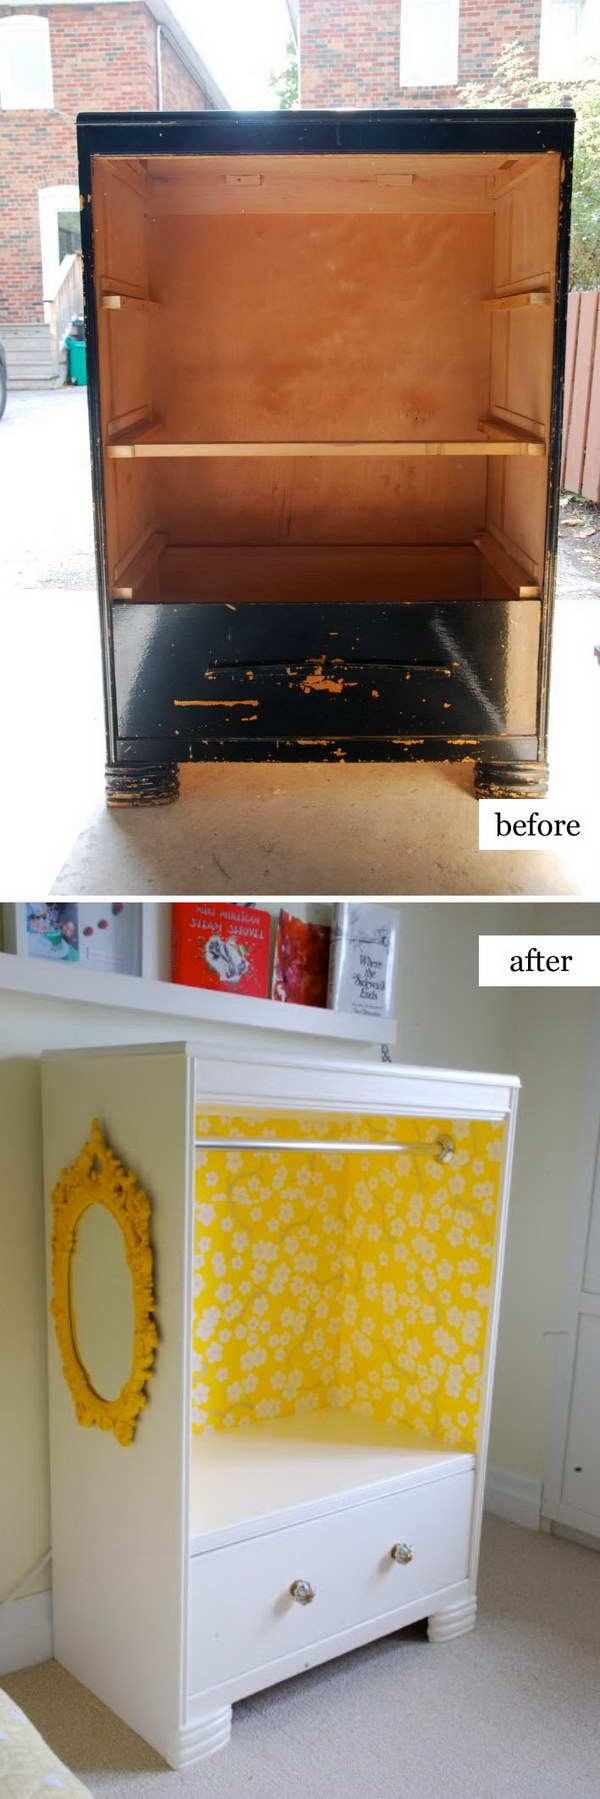 desk chair tall seat covers diy 40 awesome makeovers: clever ways with tutorials to repurpose old furniture